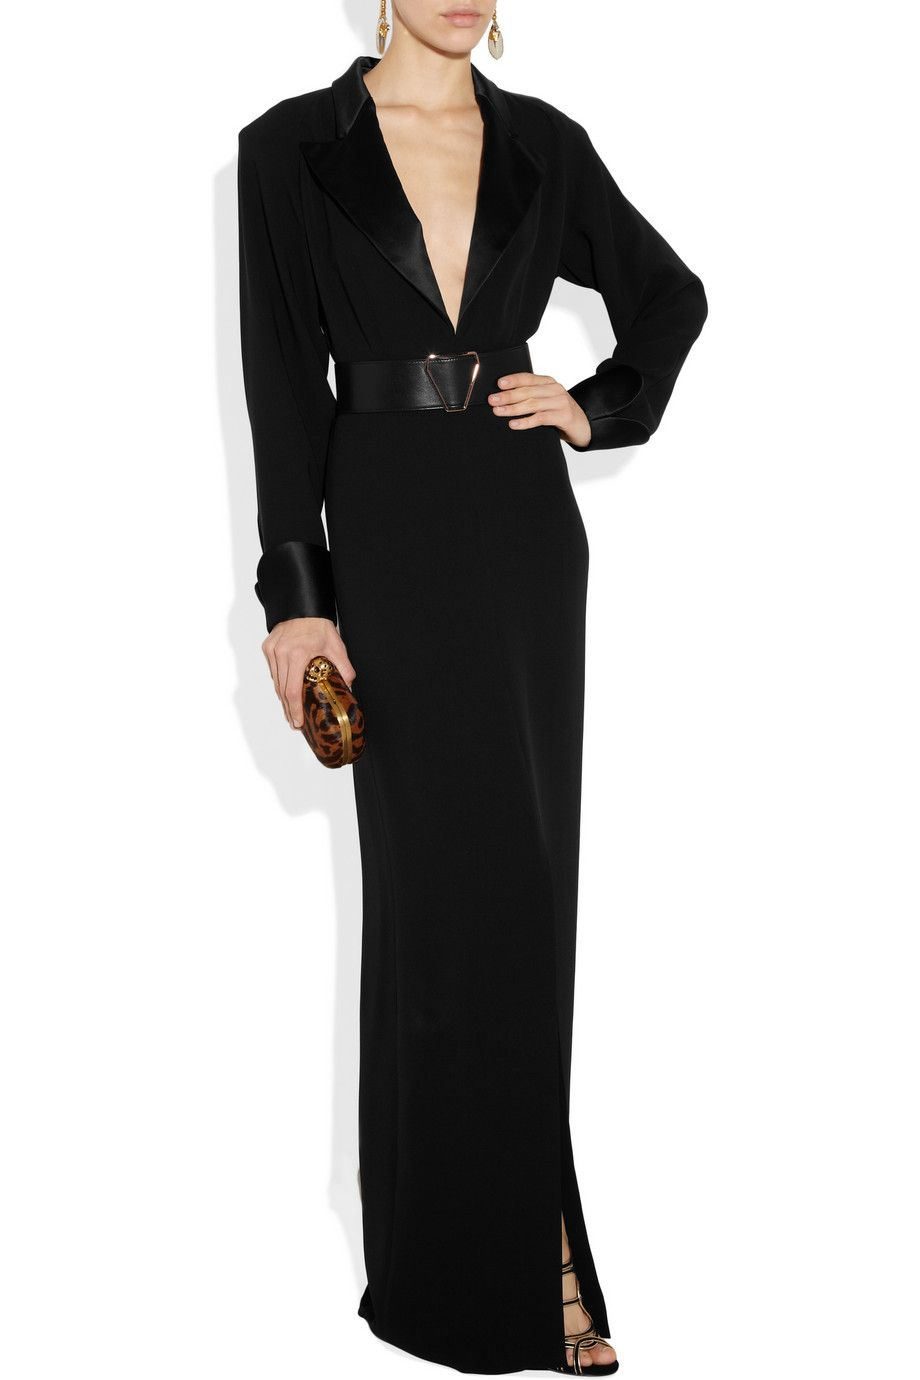 9985aa44f57 Yves Saint Laurent tuxedo dress. This is the stuff that fashion museums are  made of.